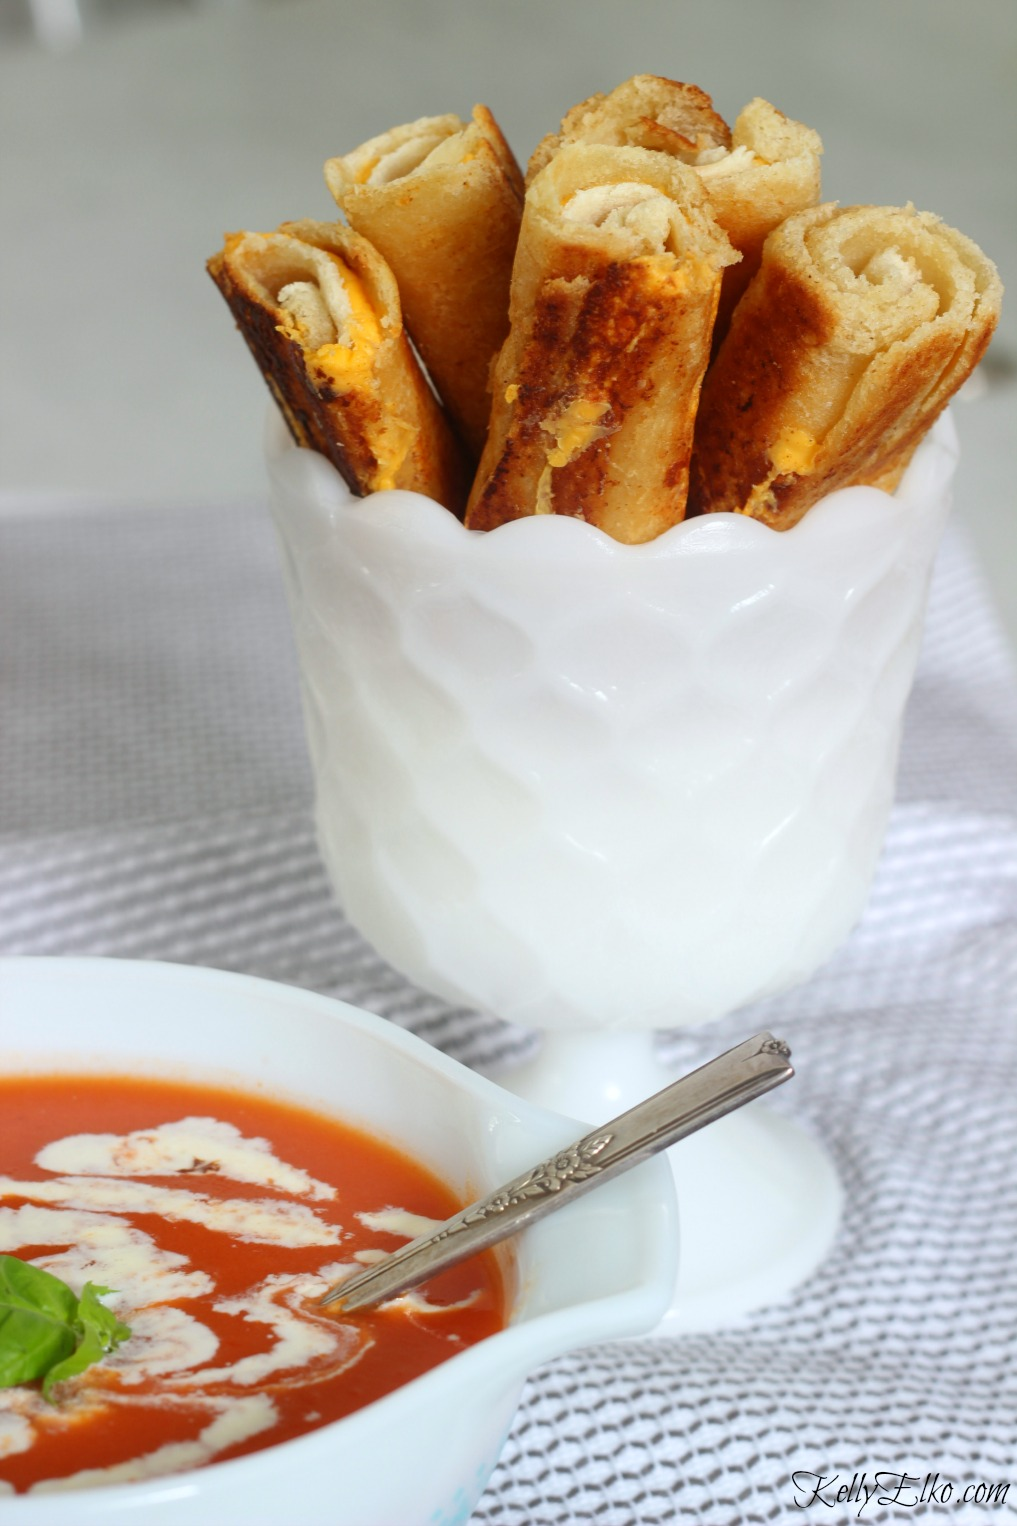 Grilled Cheese Dippers - serve them with your favorite soup kellyelko.com